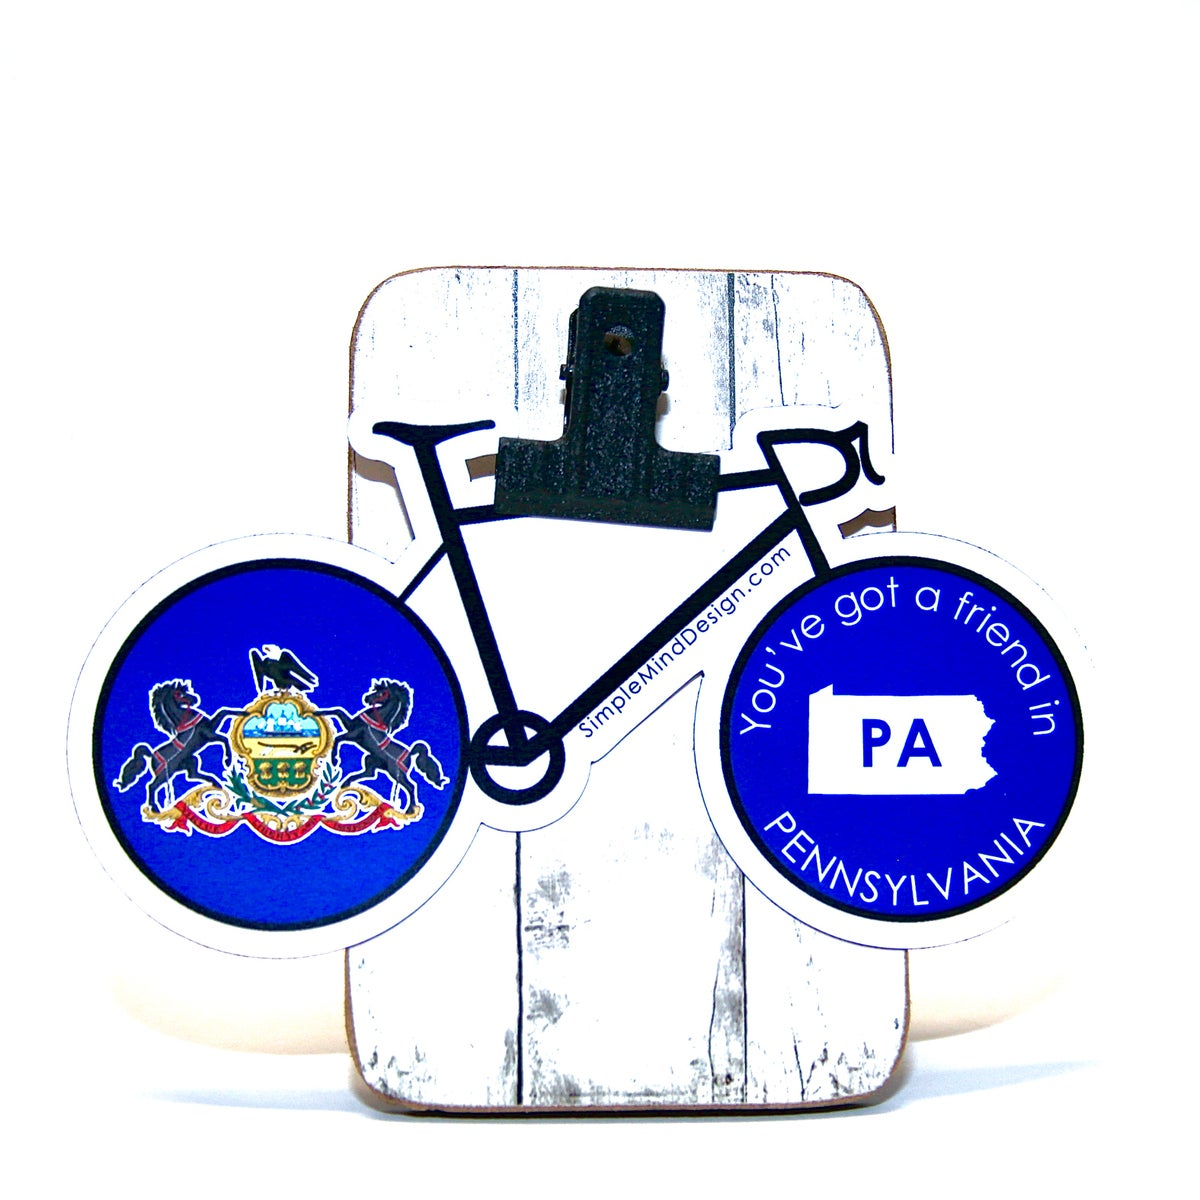 Image of Pennslyvania Road Bike Sticker